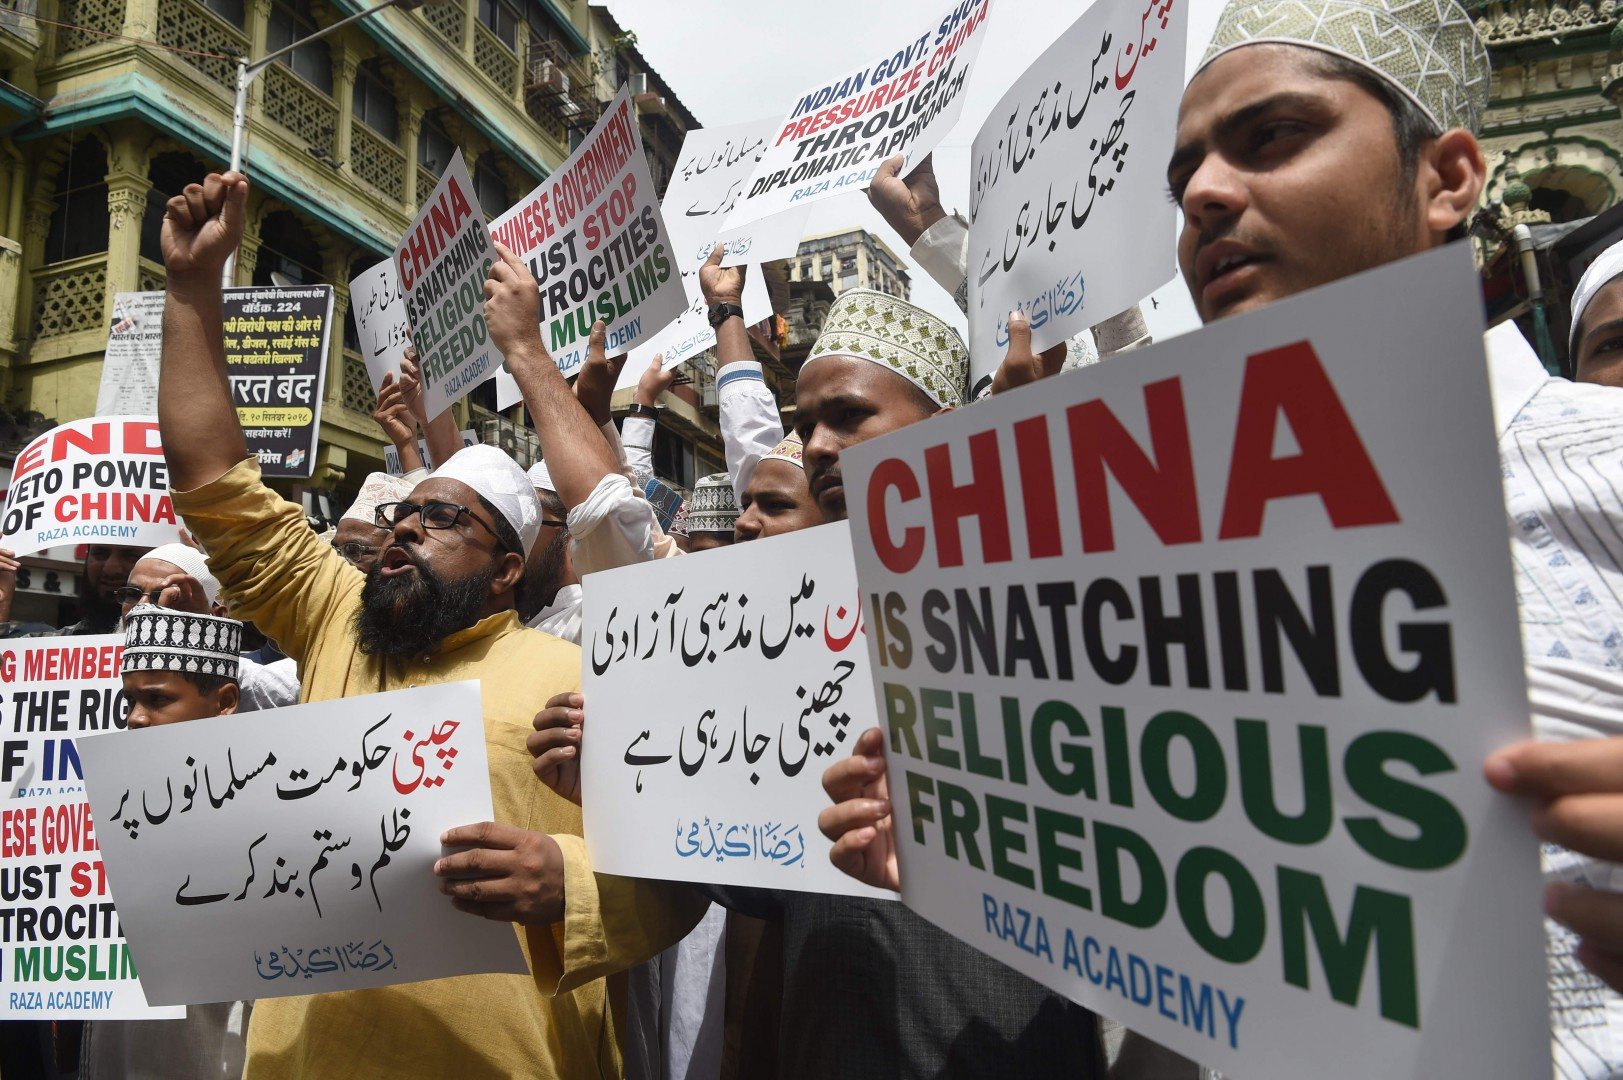 Indian Muslims hold placards during a protest against the Chinese government over the detention of Muslim minorities in Xinjiang, in Mumbai on September 14, 2018. - China has long imposed draconian restrictions on the lives of Muslim minorities in its Xinjiang region in the name of combating terrorism and separatism, with police measures intensifying in recent years. Upwards of one million ethnic Uighurs and other Turkic Muslim minorities are being held in counter-extremism centres, according to estimates cited by a United Nations panel on racial discrimination last month. (Photo by PUNIT PARANJPE / AFP)